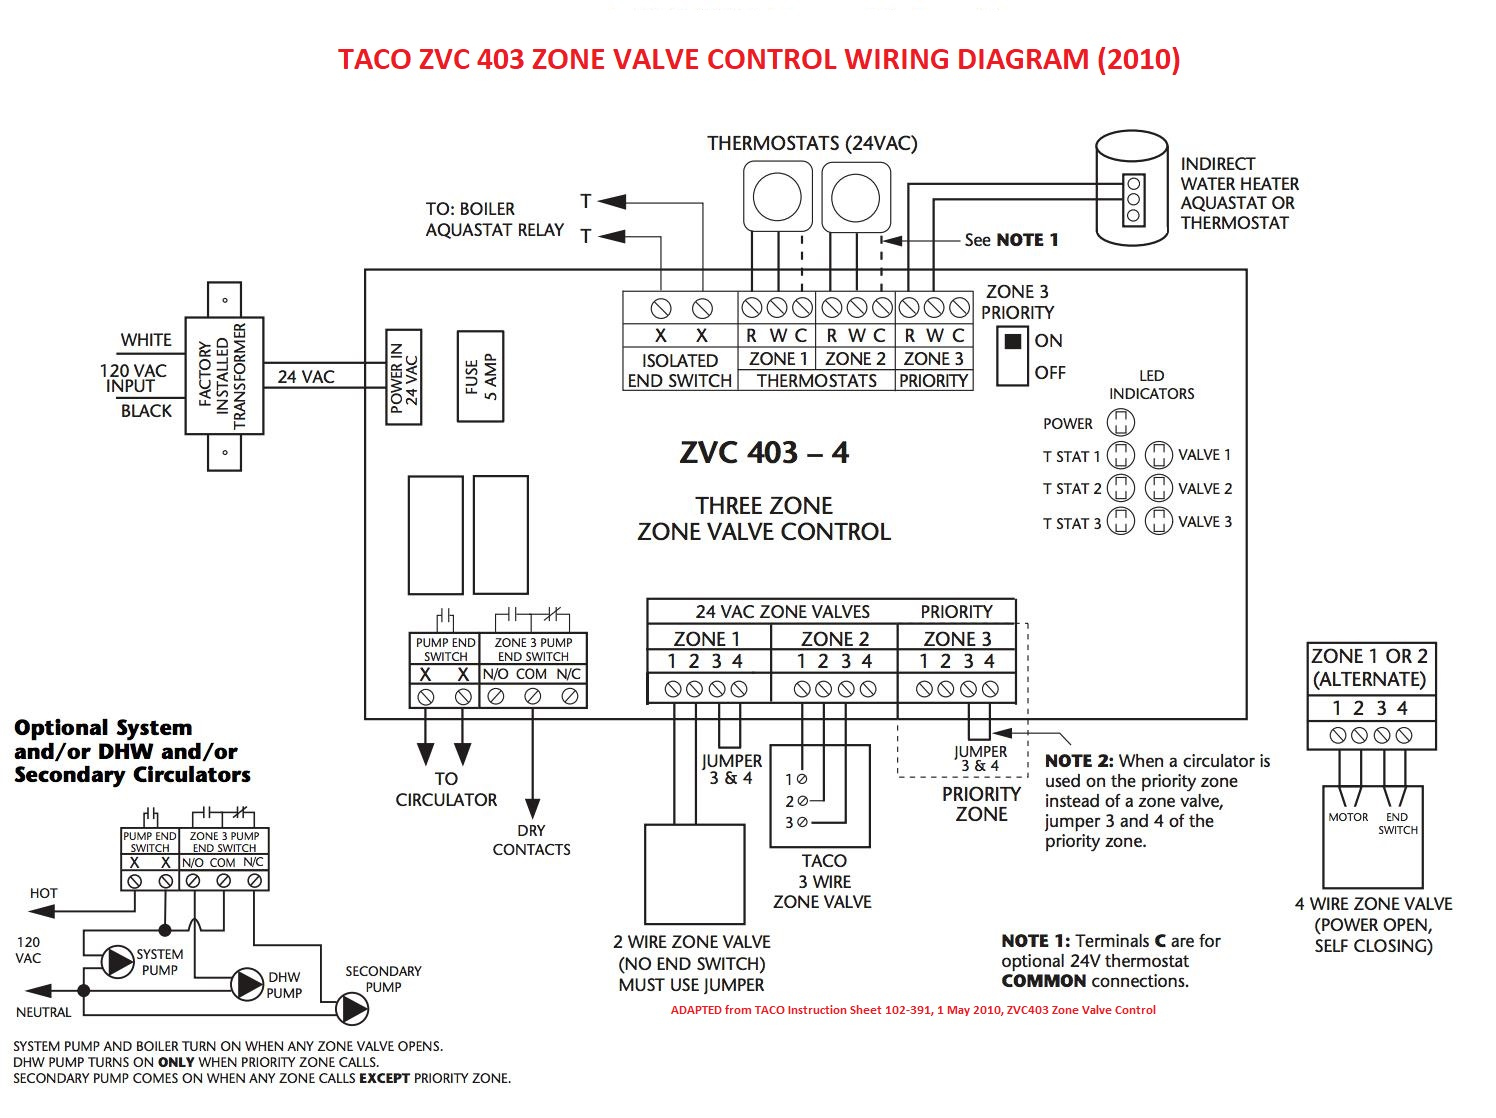 taco 3 wire zone valve wiring diagram Collection-Taci ZVC493 wiring diagram click to enlarge at InspectApedia Individual Hydronic Heating Zone Valve 7-b